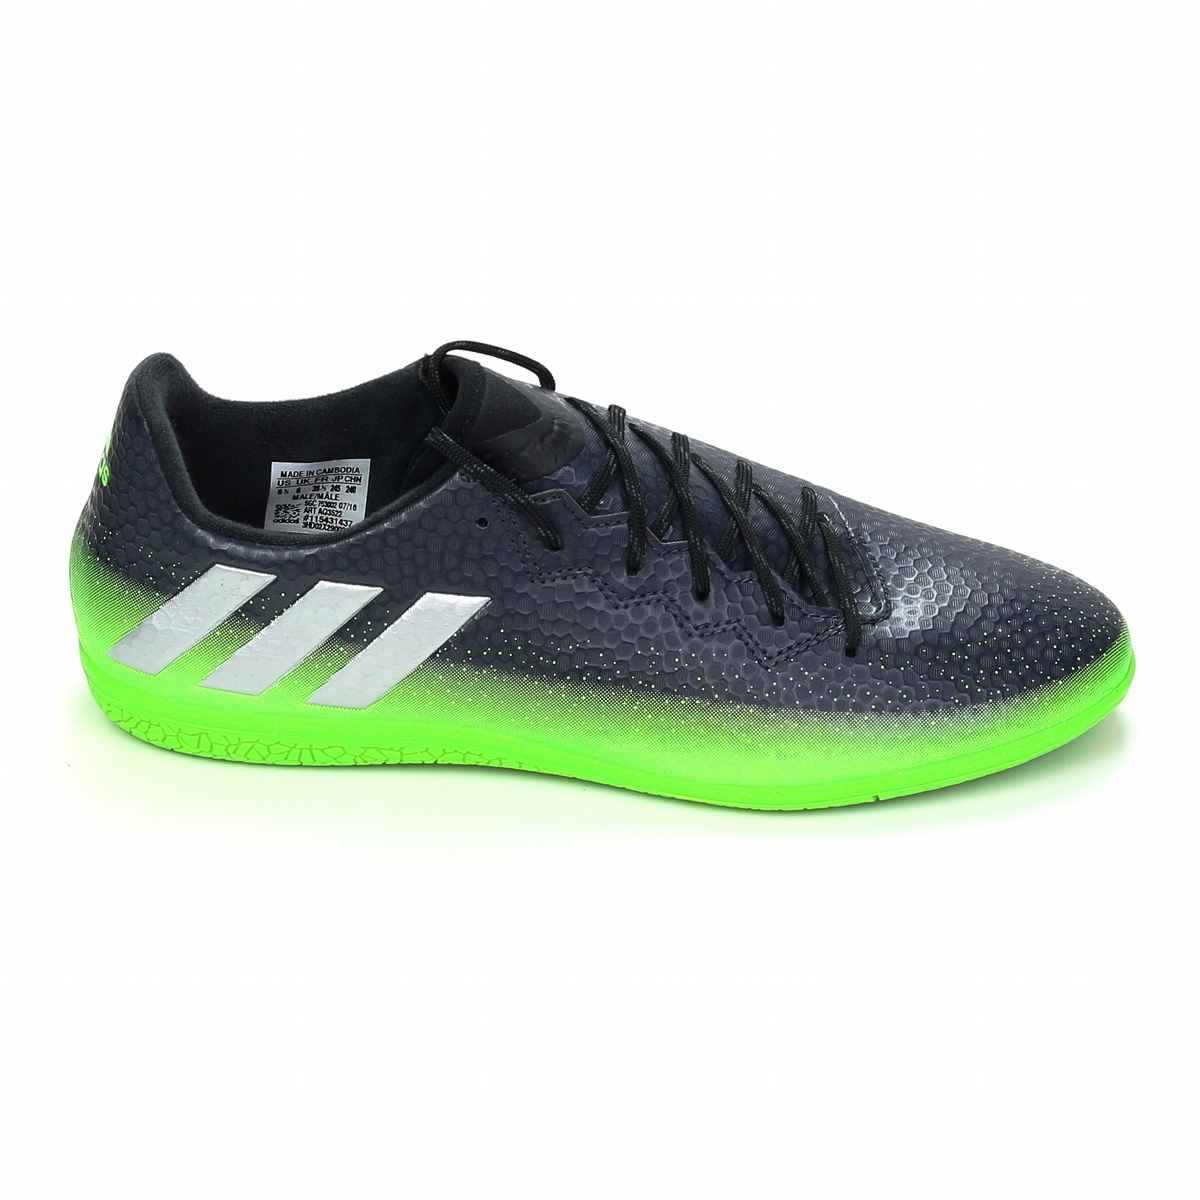 862e2f24b1f Adidas Messi 16.3 Indoor Soccer Shoes (Dark Grey Silver Metallic ...